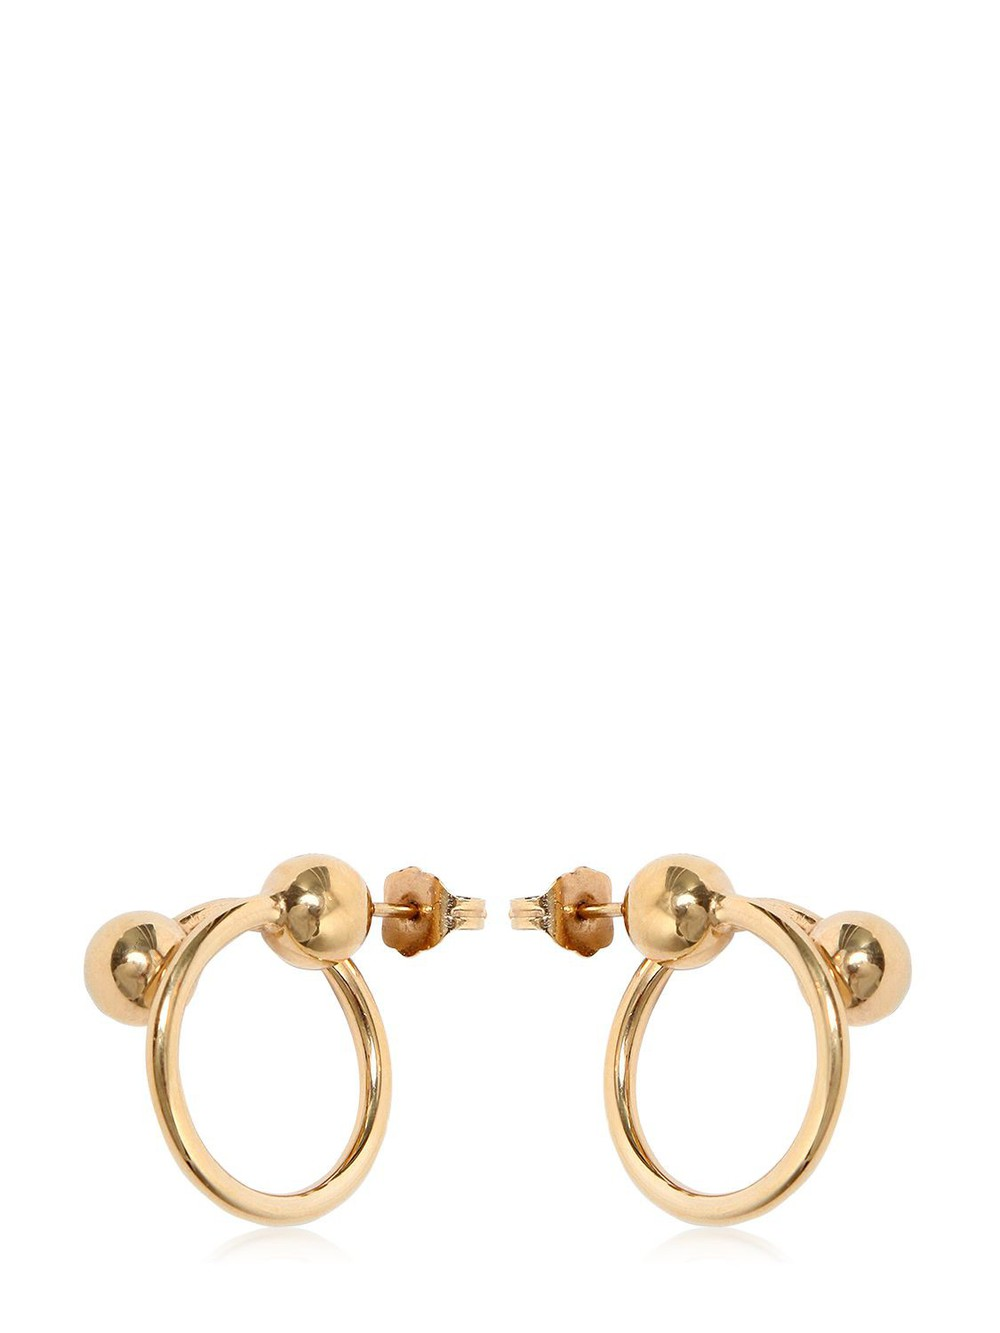 J.W.ANDERSON Double Ball Hoop Earrings in gold